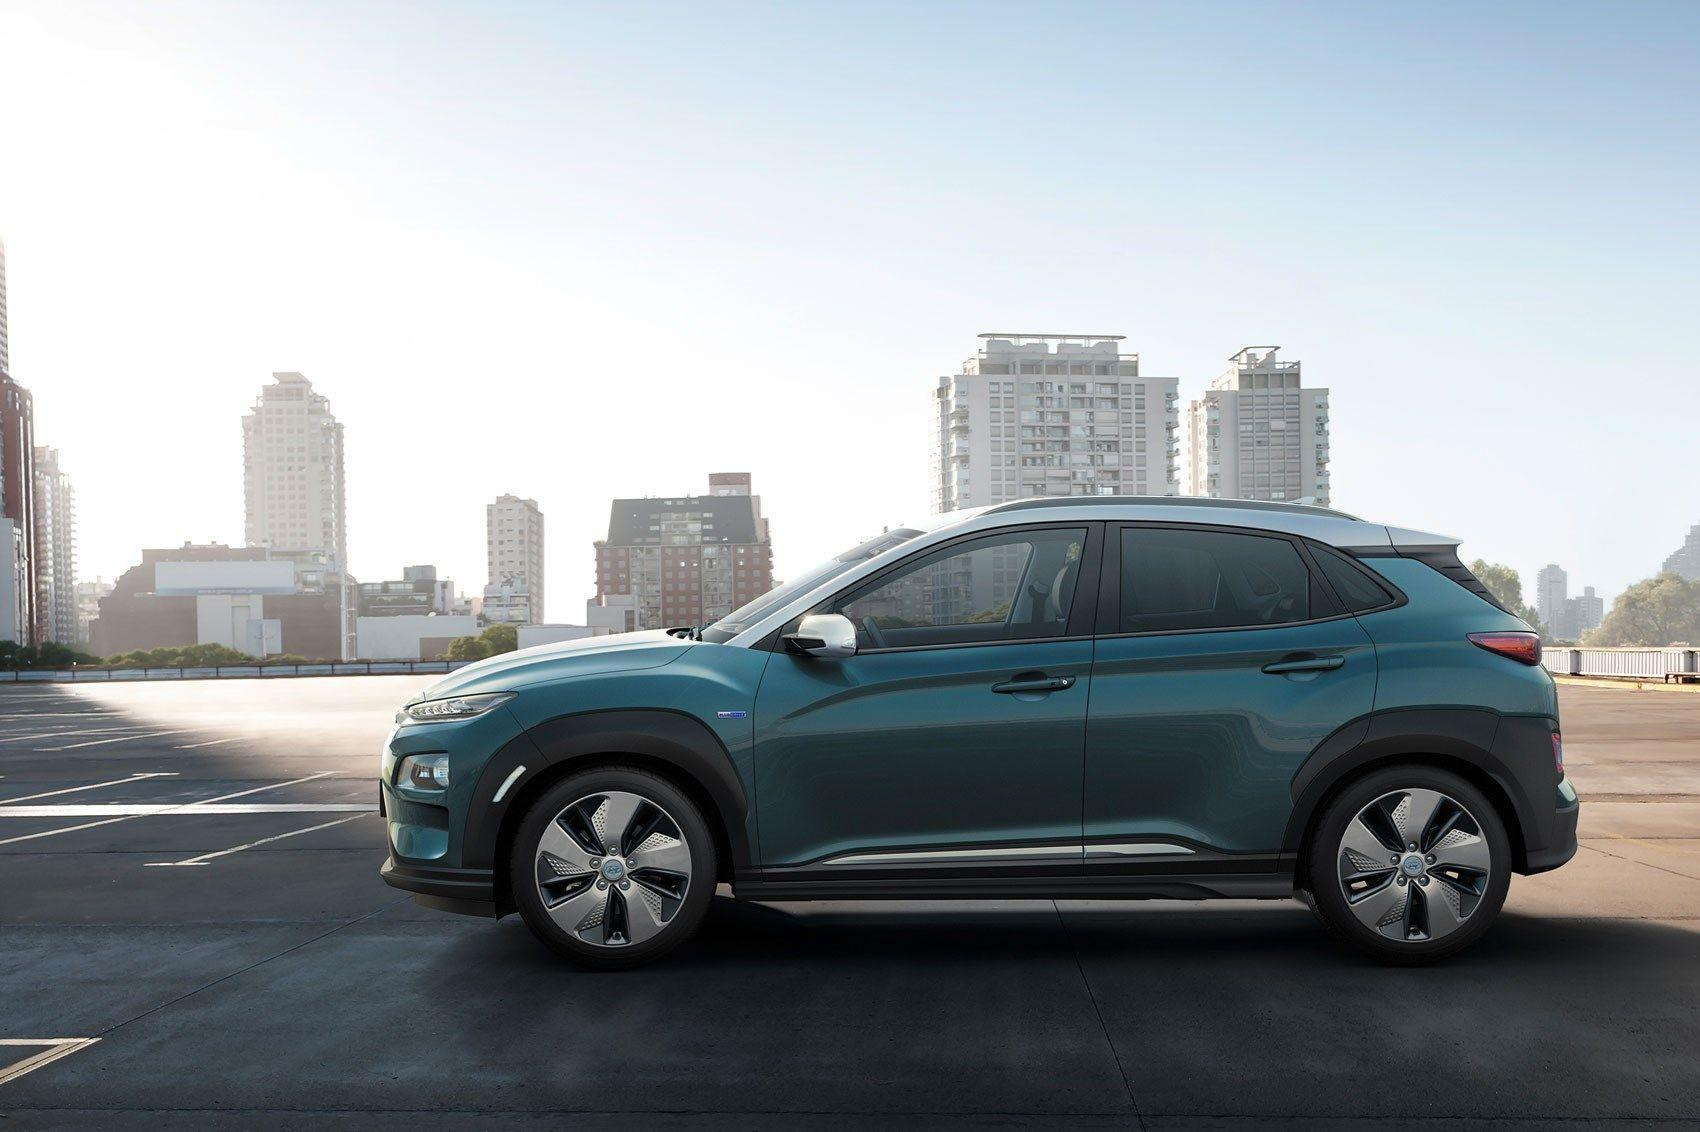 New Hyundai Kona SUV: specs, pics and details on Electric model by